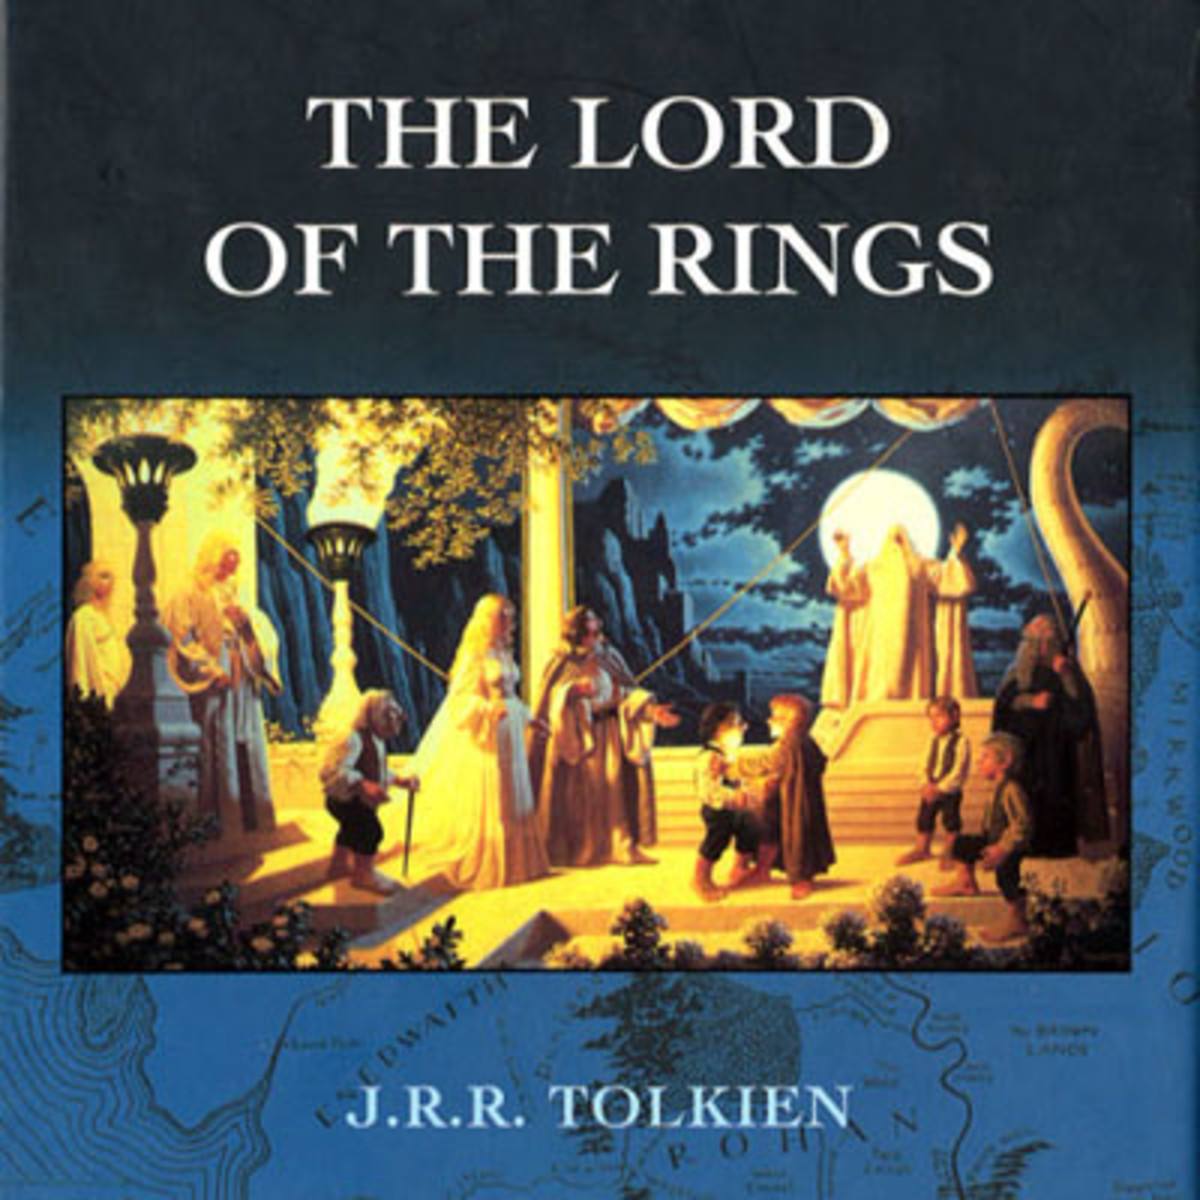 The BBC Lord of the Rings Radio Dramatization